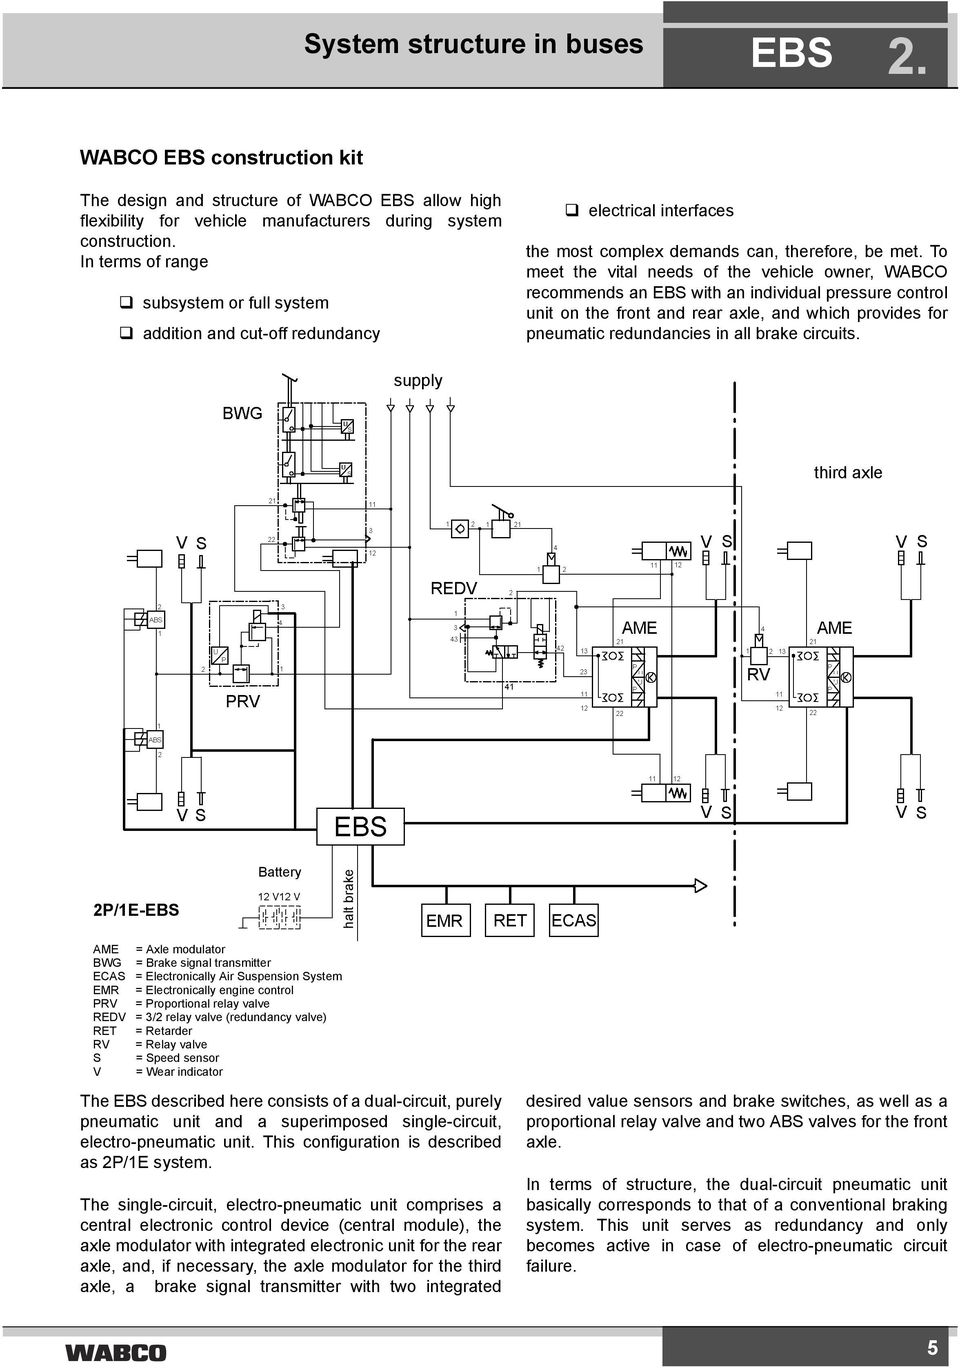 Ebs Electronically Controlled Brake System In Motor Coaches Pdf 1994 Volvo 960 Anti Lock Electrical Diagram To Meet The Vital Needs Of Vehicle Owner Wabco Recommends An With Individual